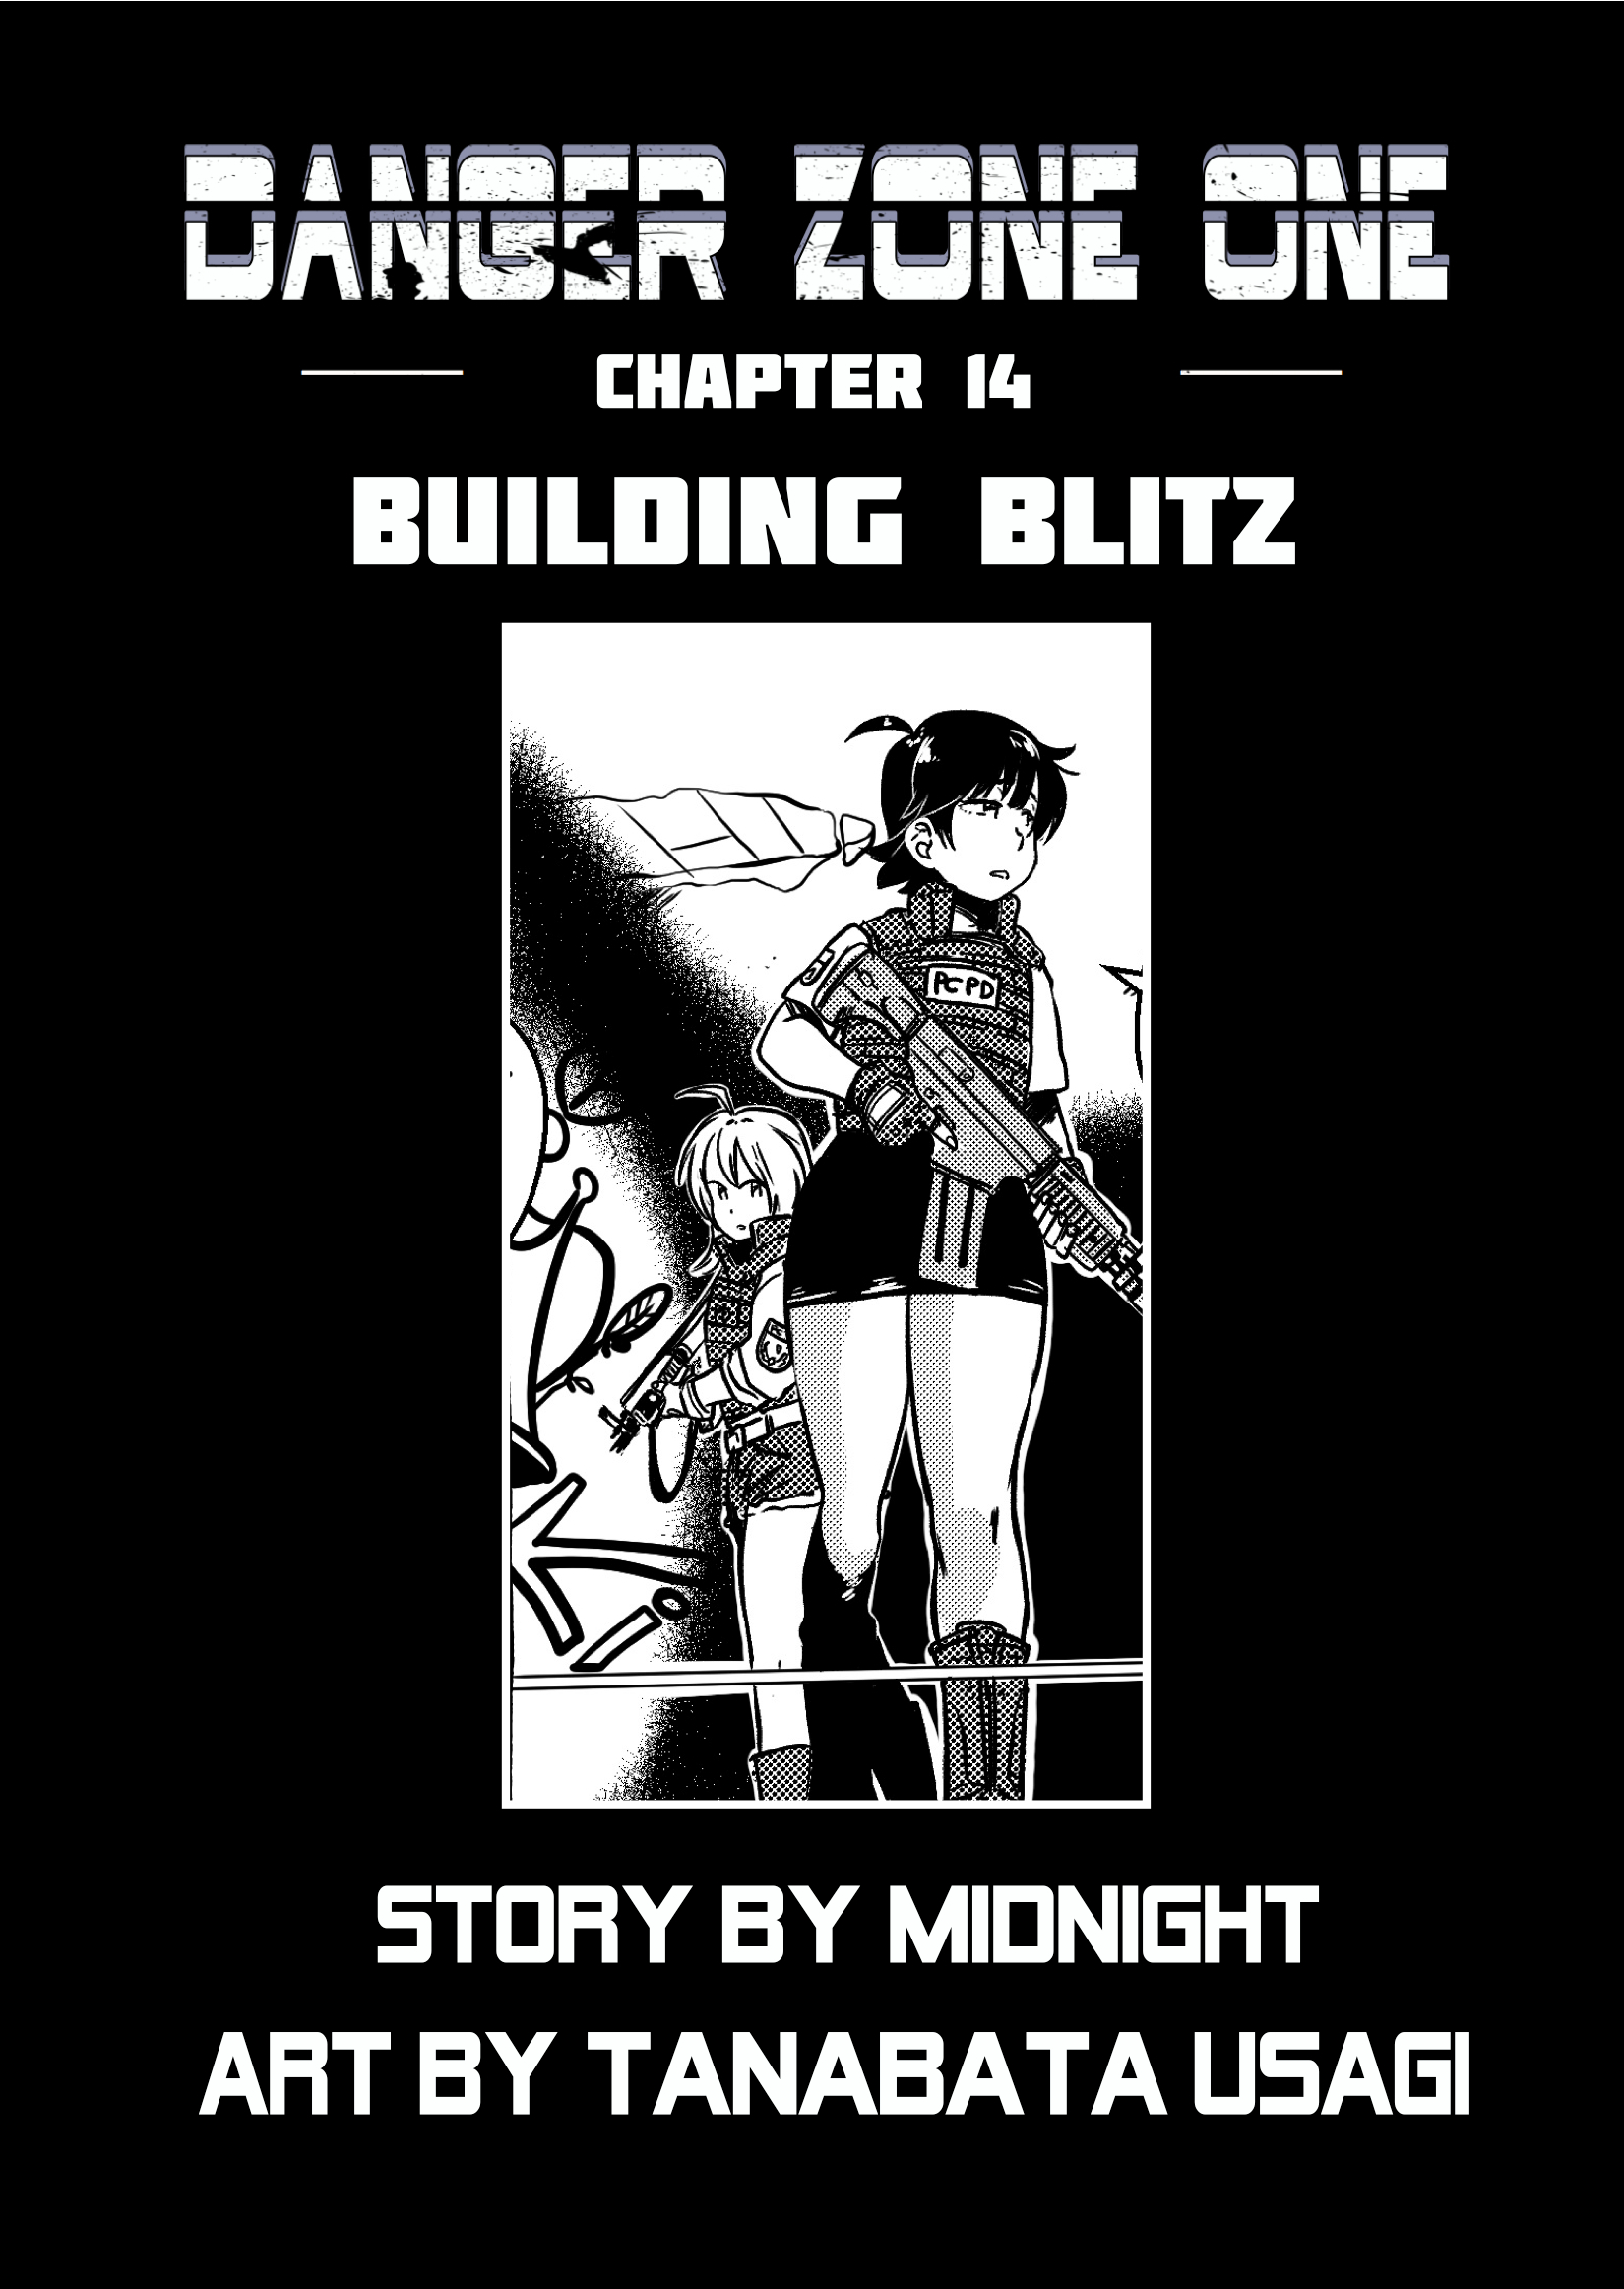 Chapter 14: Building Blitz